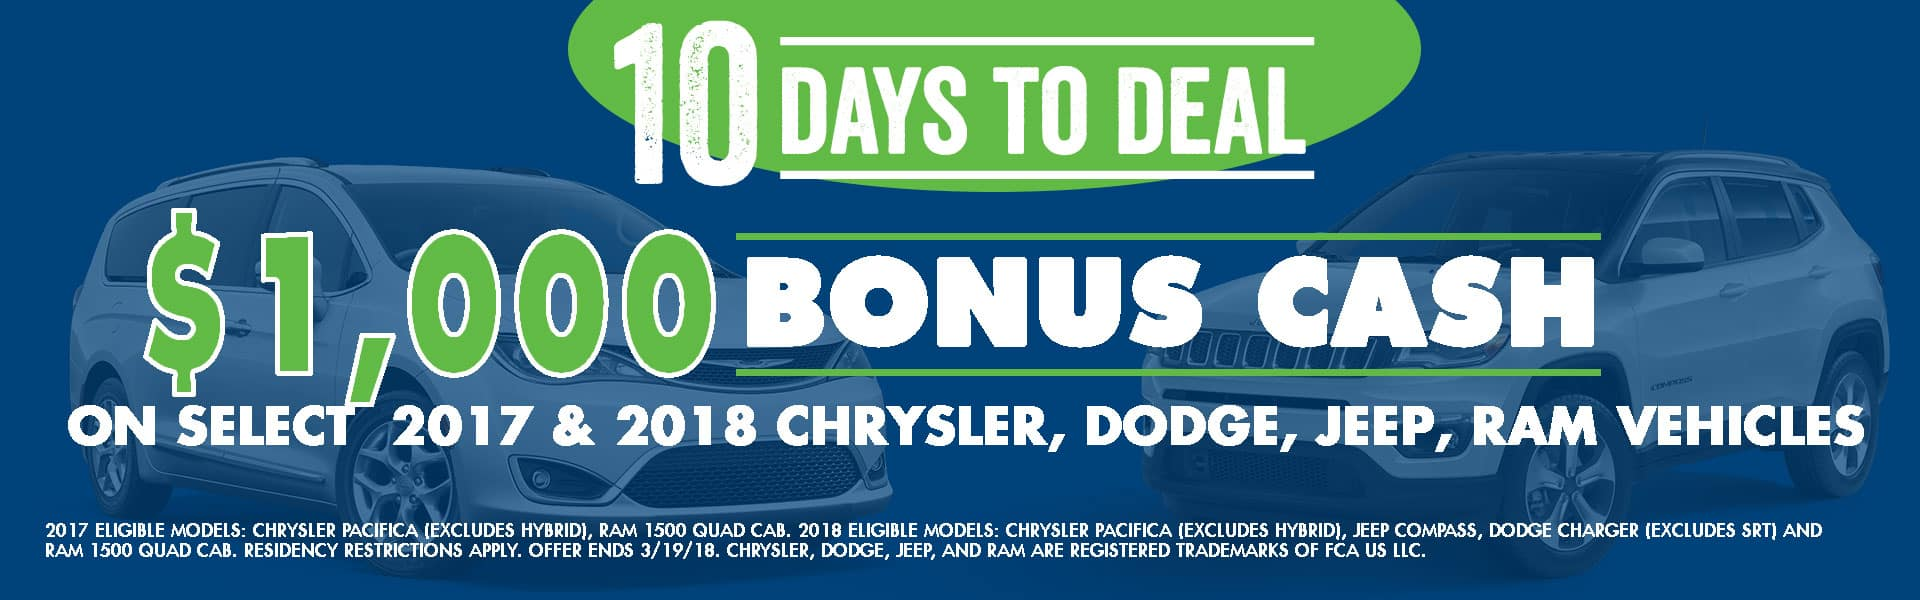 10 days to deal chrysler jeep dodge ram carright serving moon township, pittsburgh, north hills